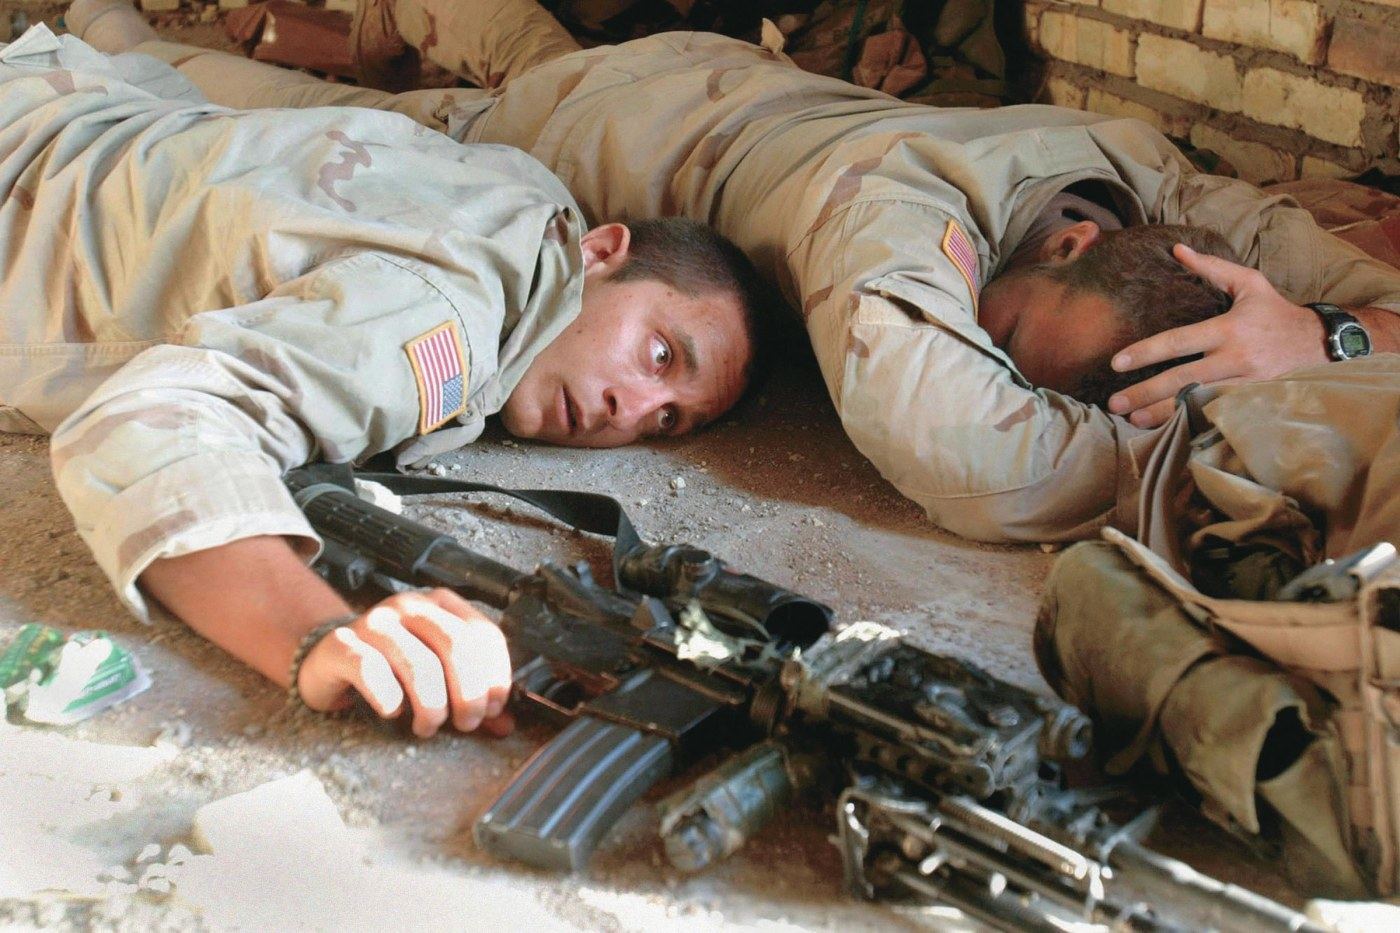 A soldier covers his head while another remains alert during an August 2004 battle with Shiite militias in the holy city of Najaf.